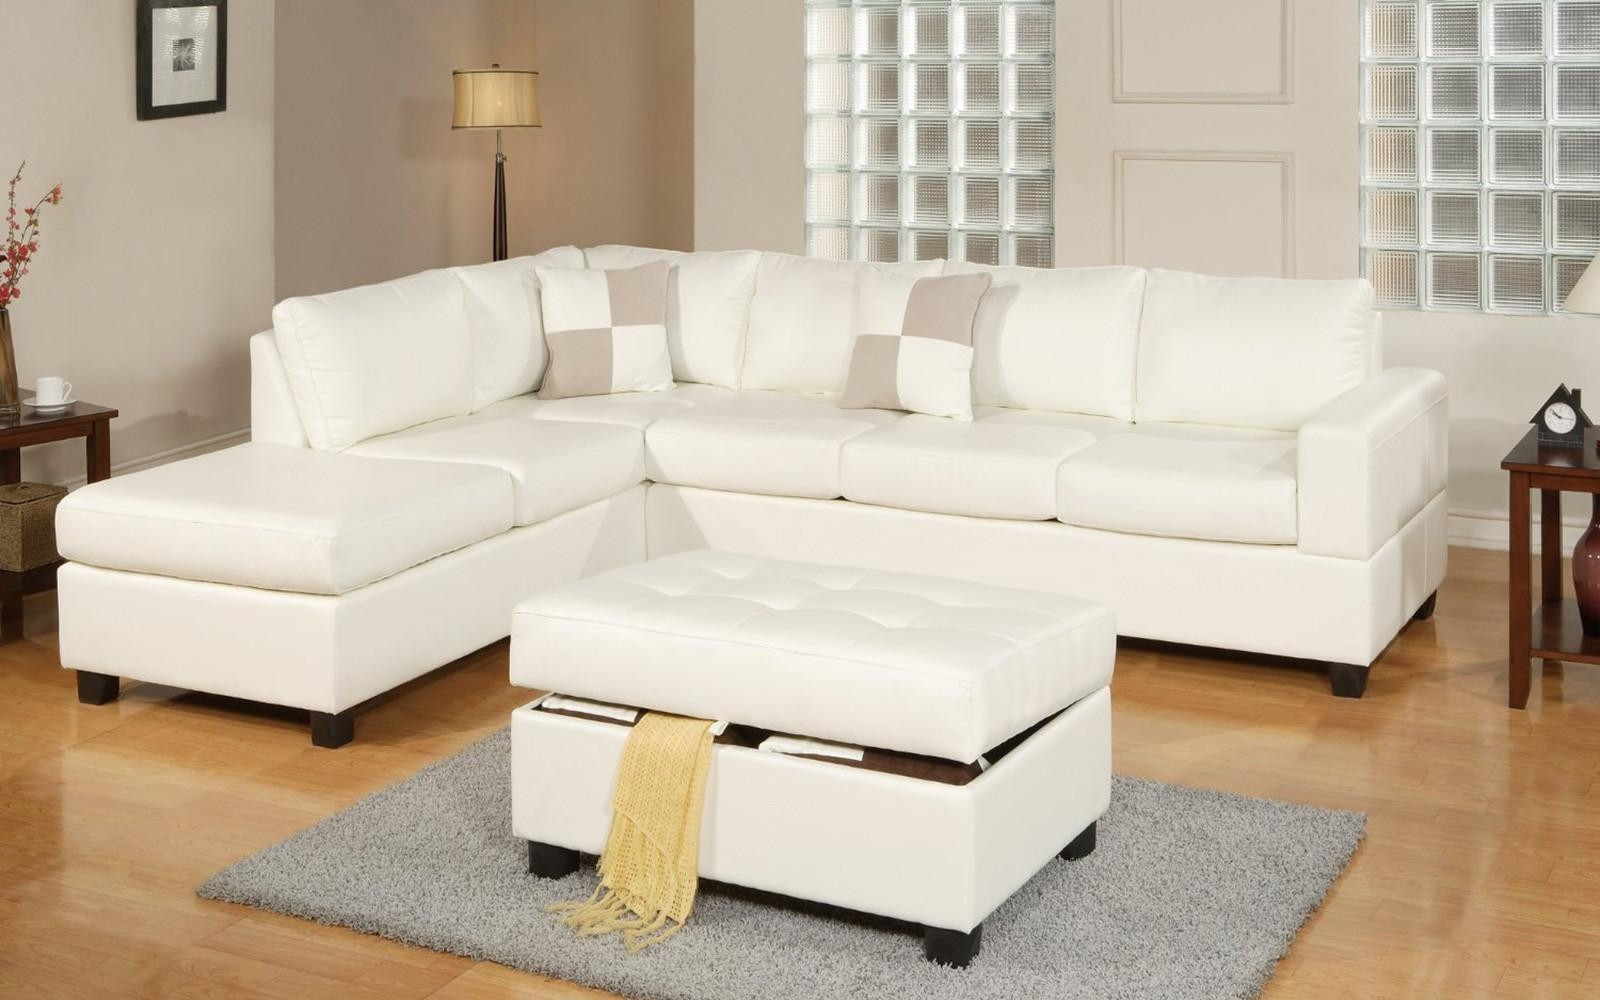 Best ideas about White Sectional Sofa . Save or Pin 21 Best Ideas White Sectional Sofa for Sale Now.